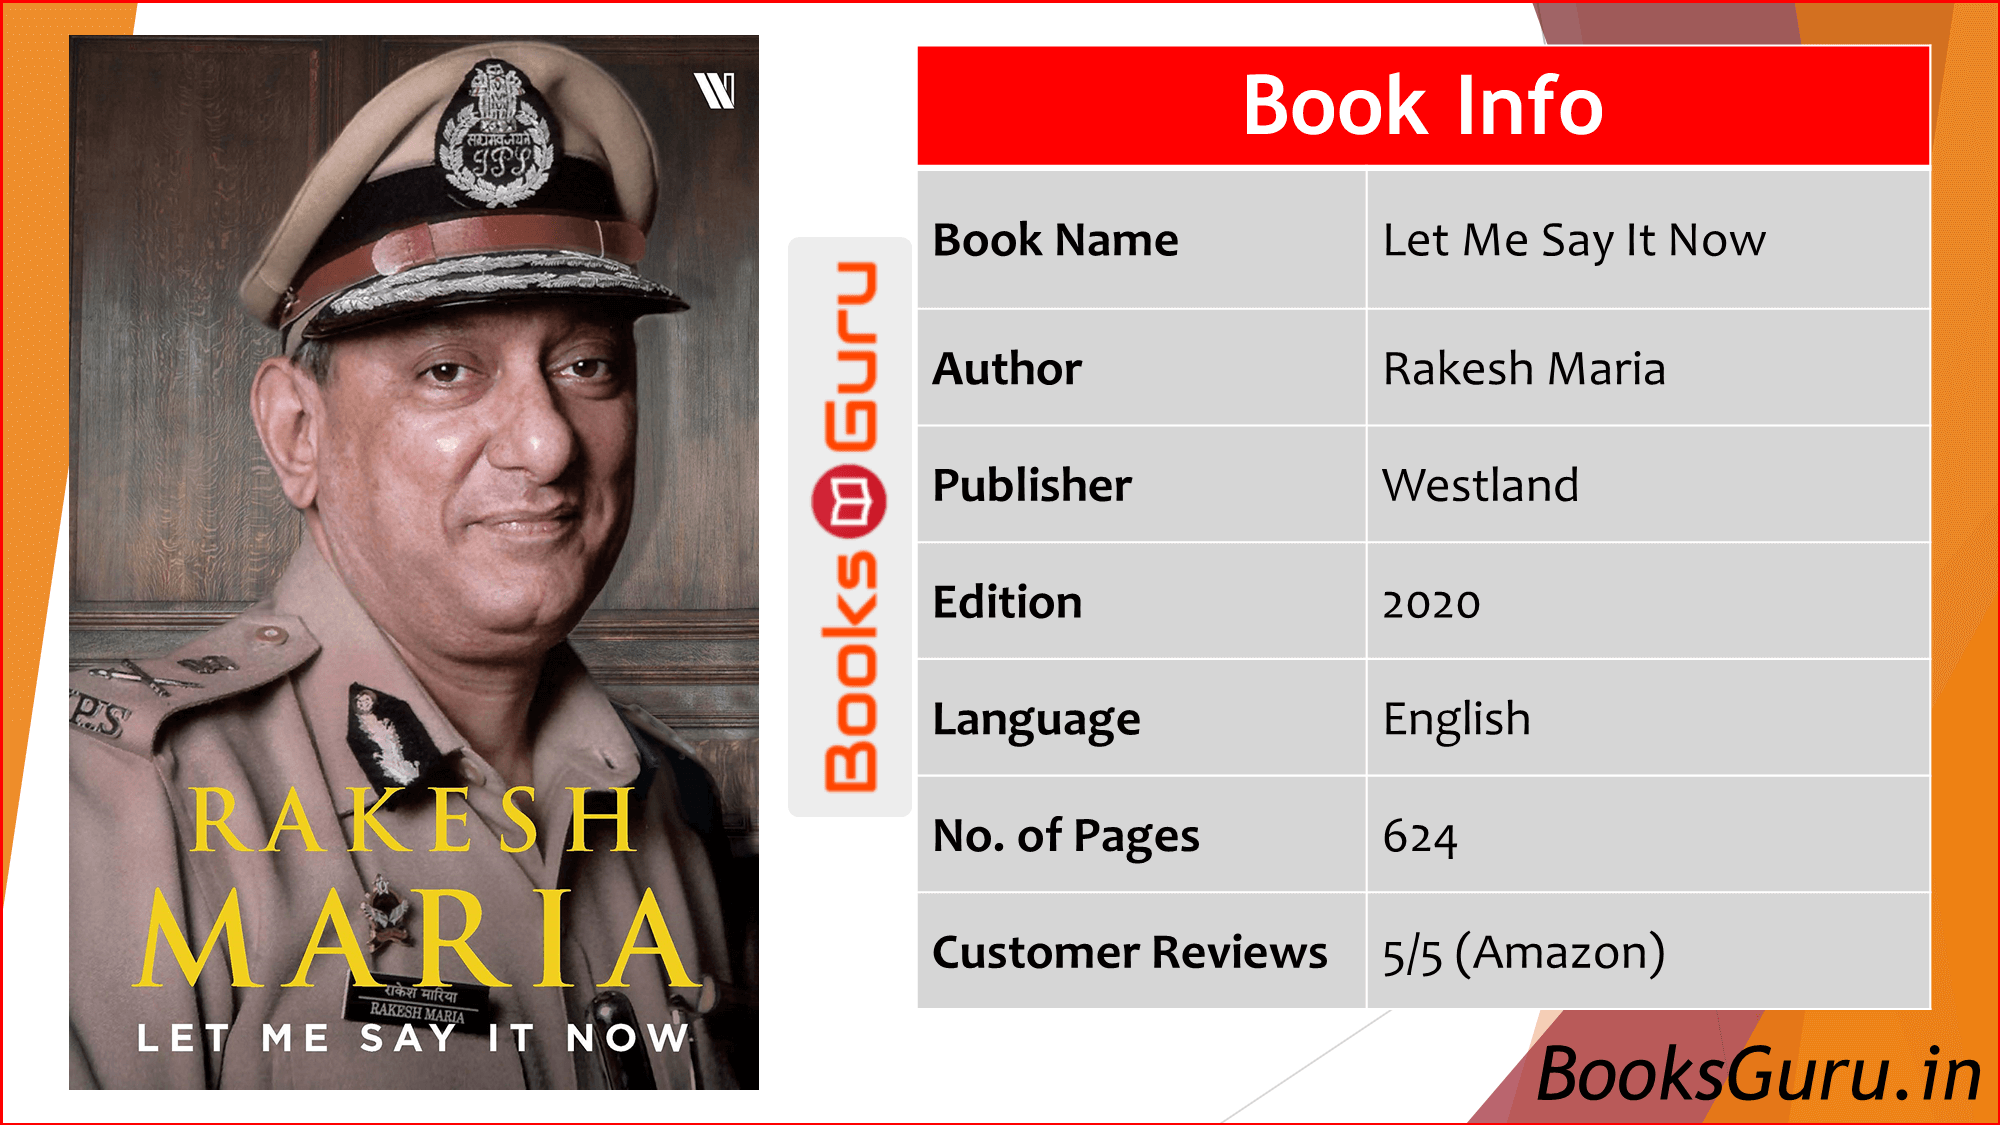 Let Me Say It Now by Rakesh Maria (IPS)